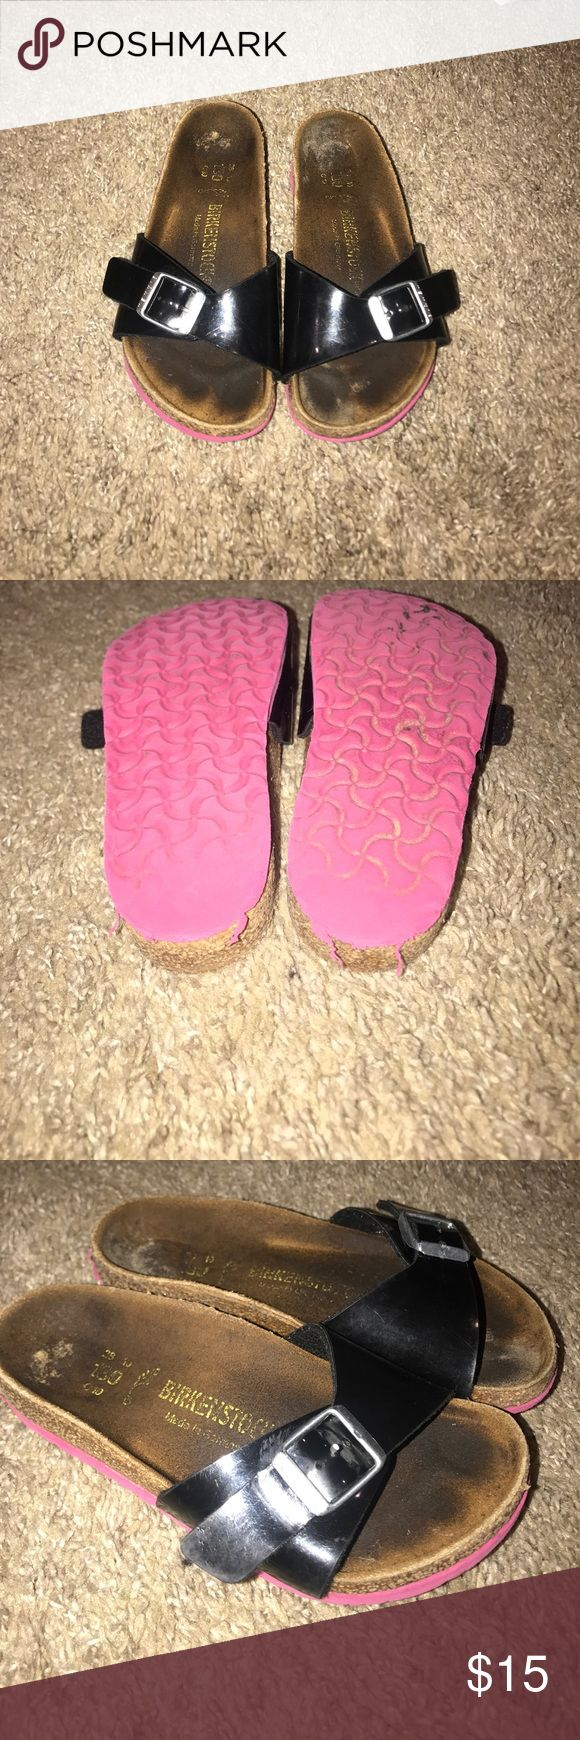 Little girls Birkenstock slippers Used and loved by my daughter. Used but still have a lot of wears out of them. Birkenstock Shoes Sandals & Flip Flops